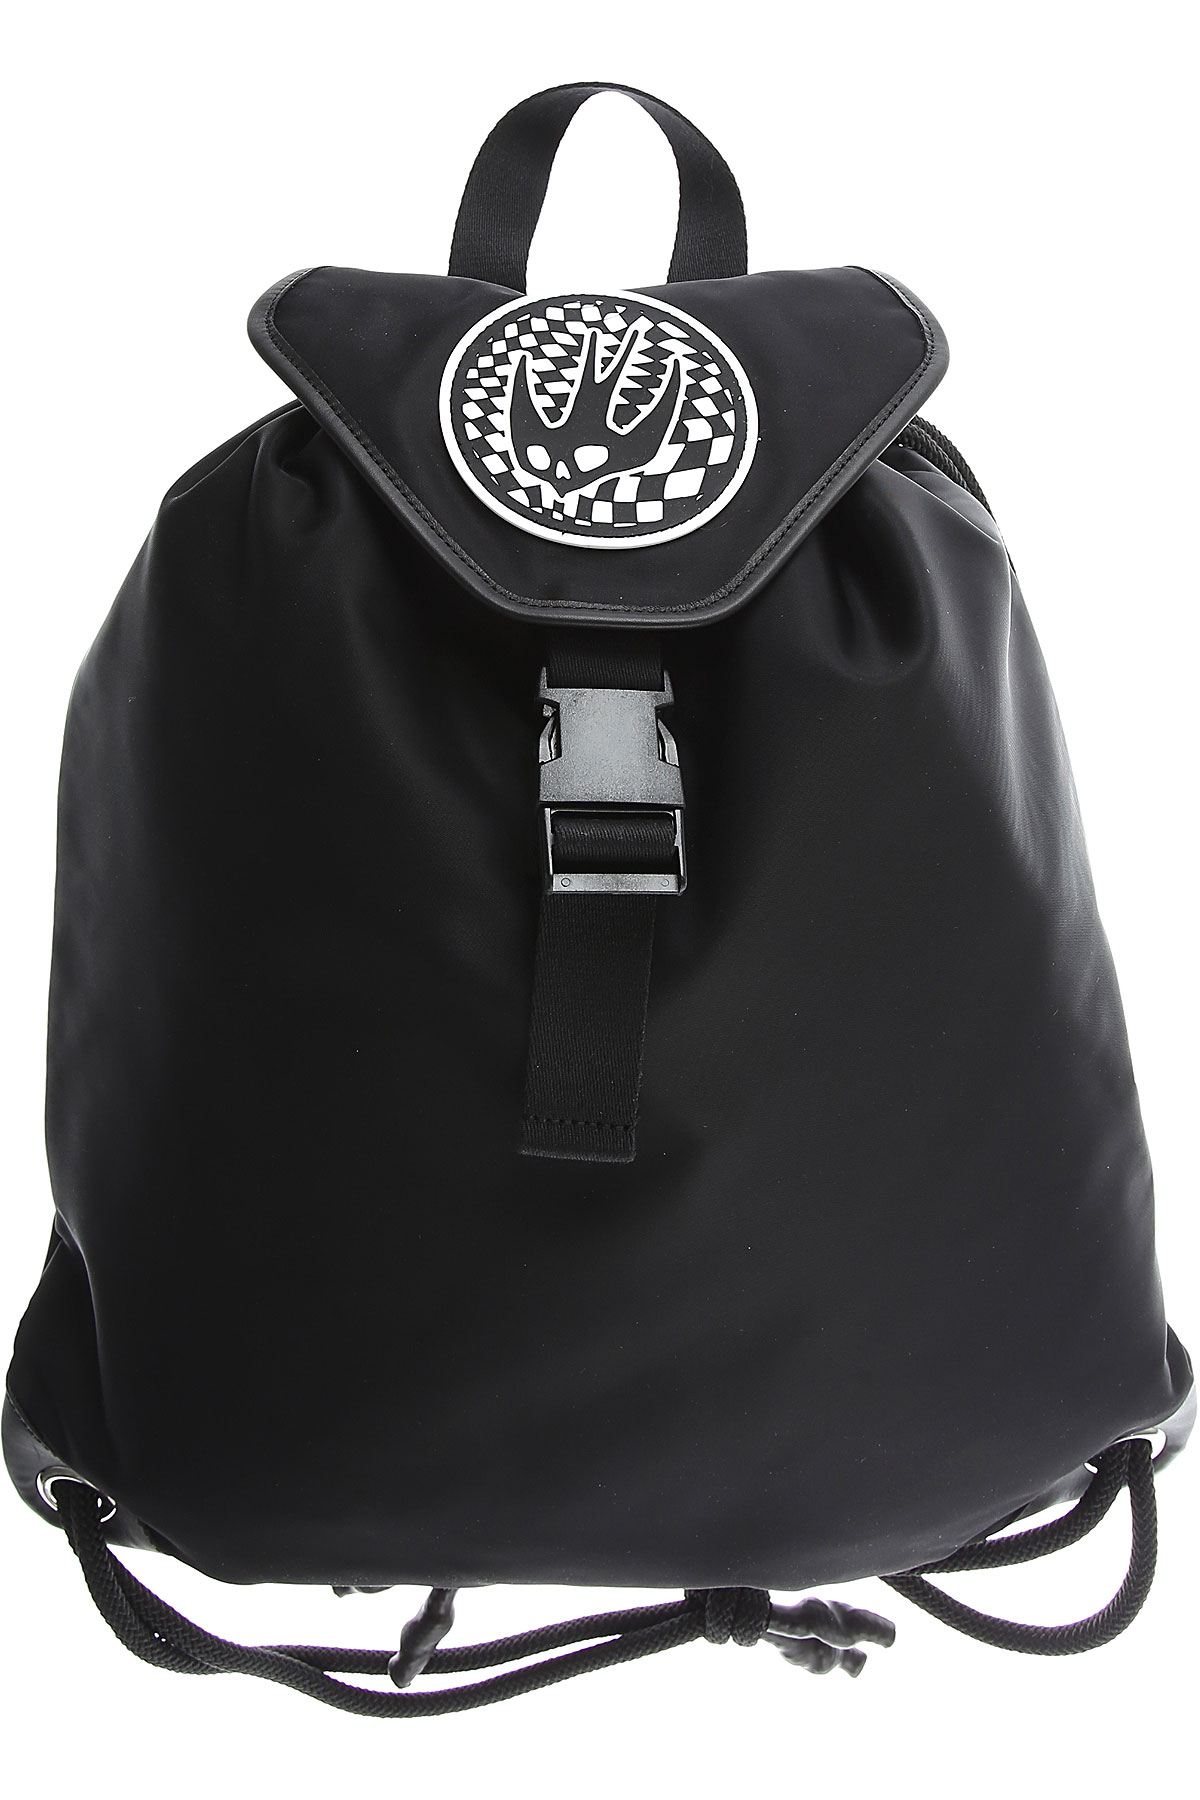 Alexander McQueen McQ Backpack for Men On Sale in Outlet, Black, Nylon, 2019